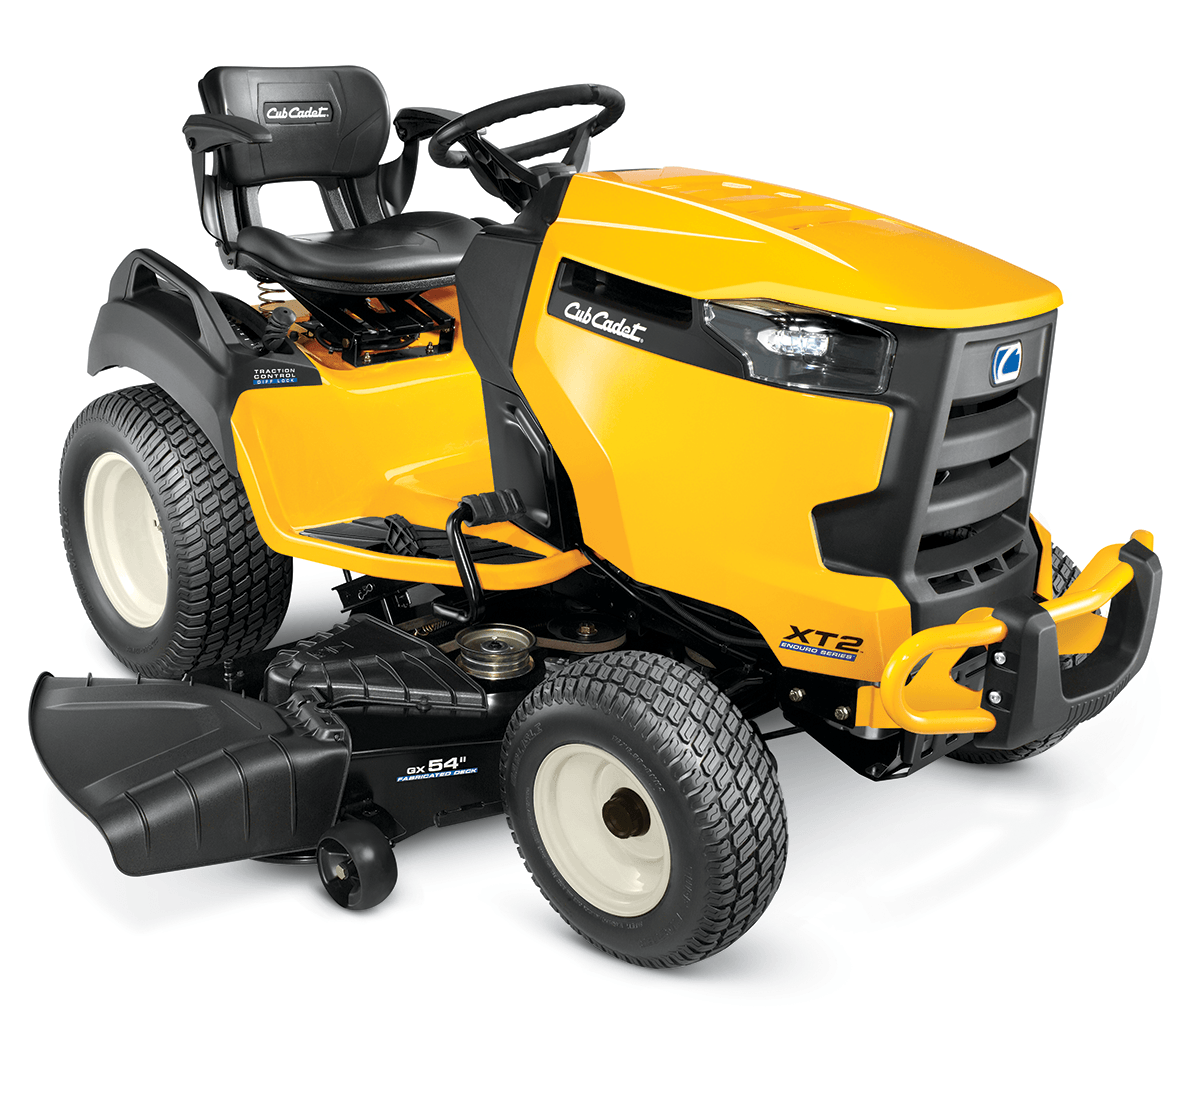 New 2017 Cub Cadet XT2 GX 54 in. D Lawn Mowers in Bowling ...